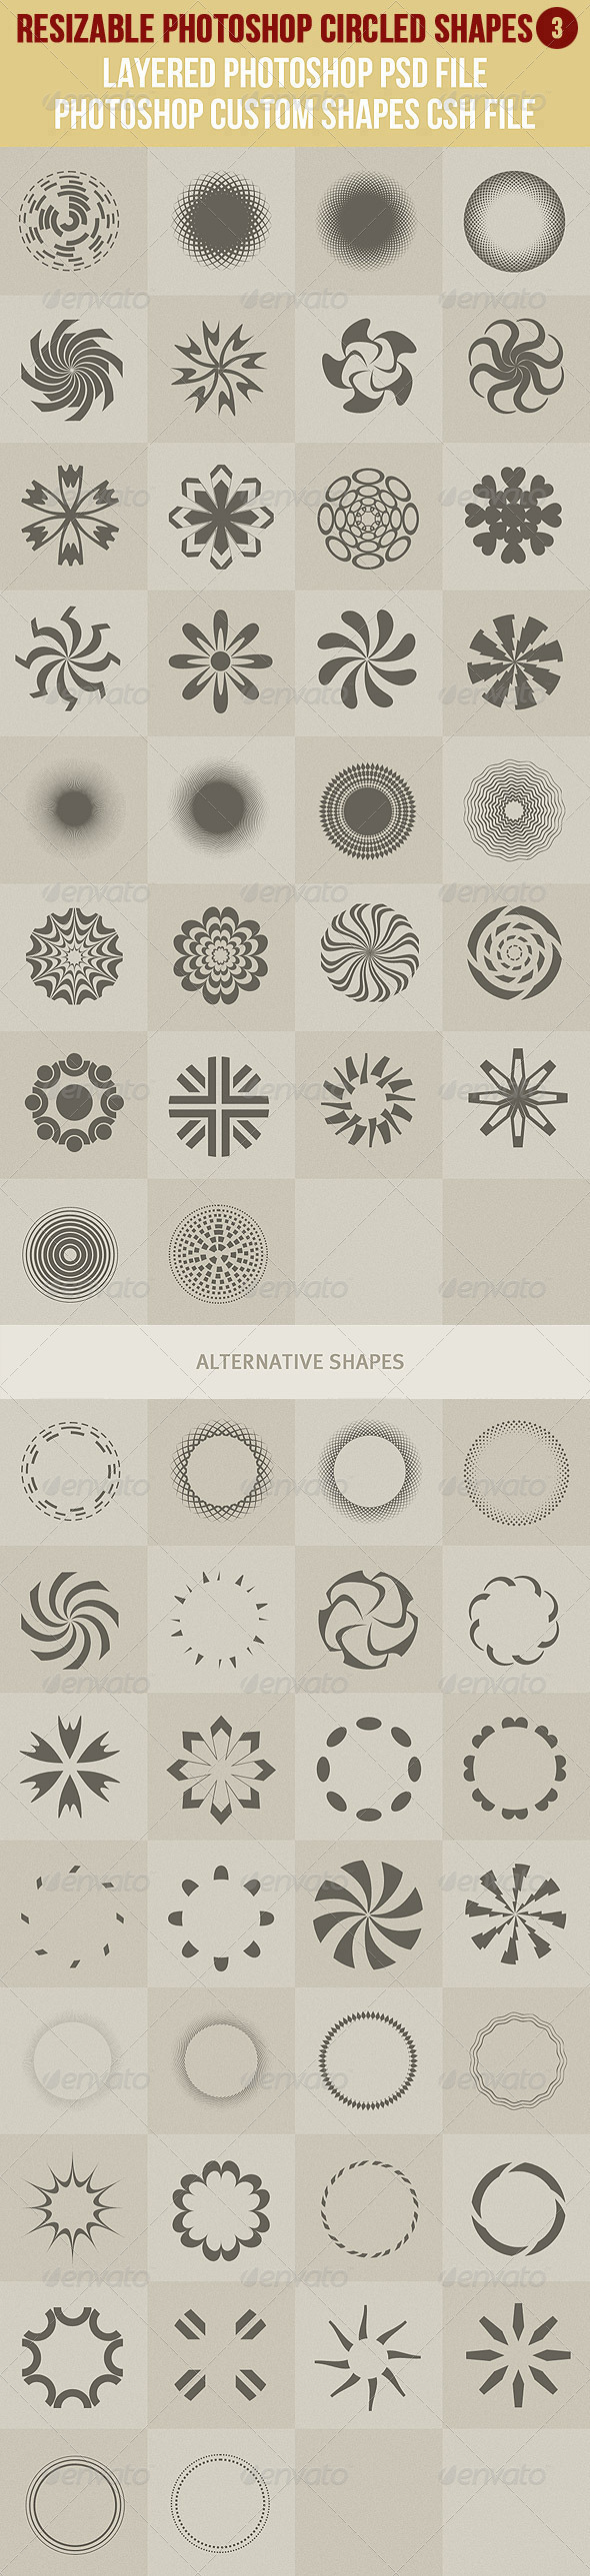 Photoshop Circled Shapes 3 - Symbols Shapes